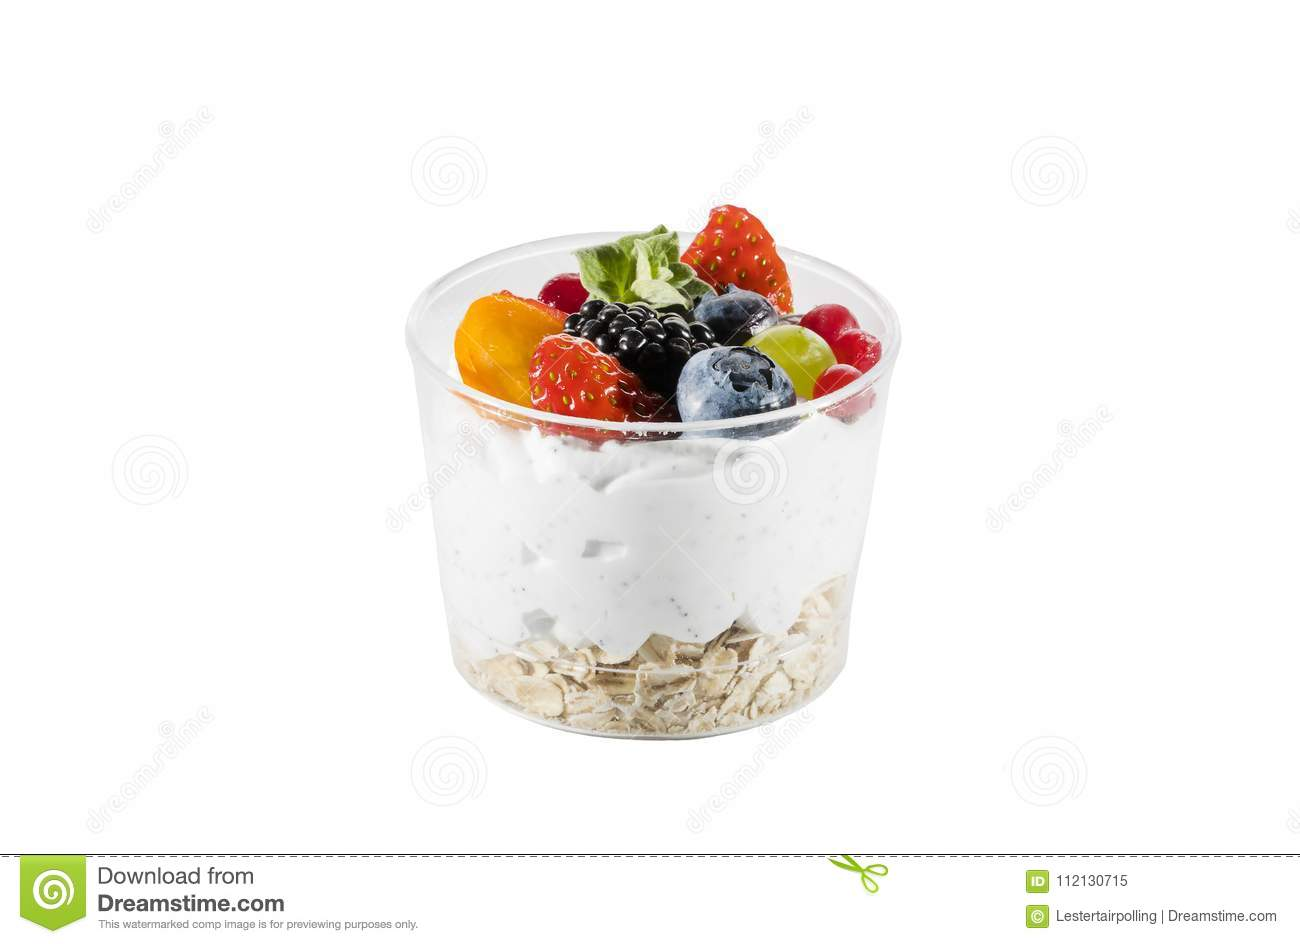 Creamy cream dessert in a plastic cup decorated with berries